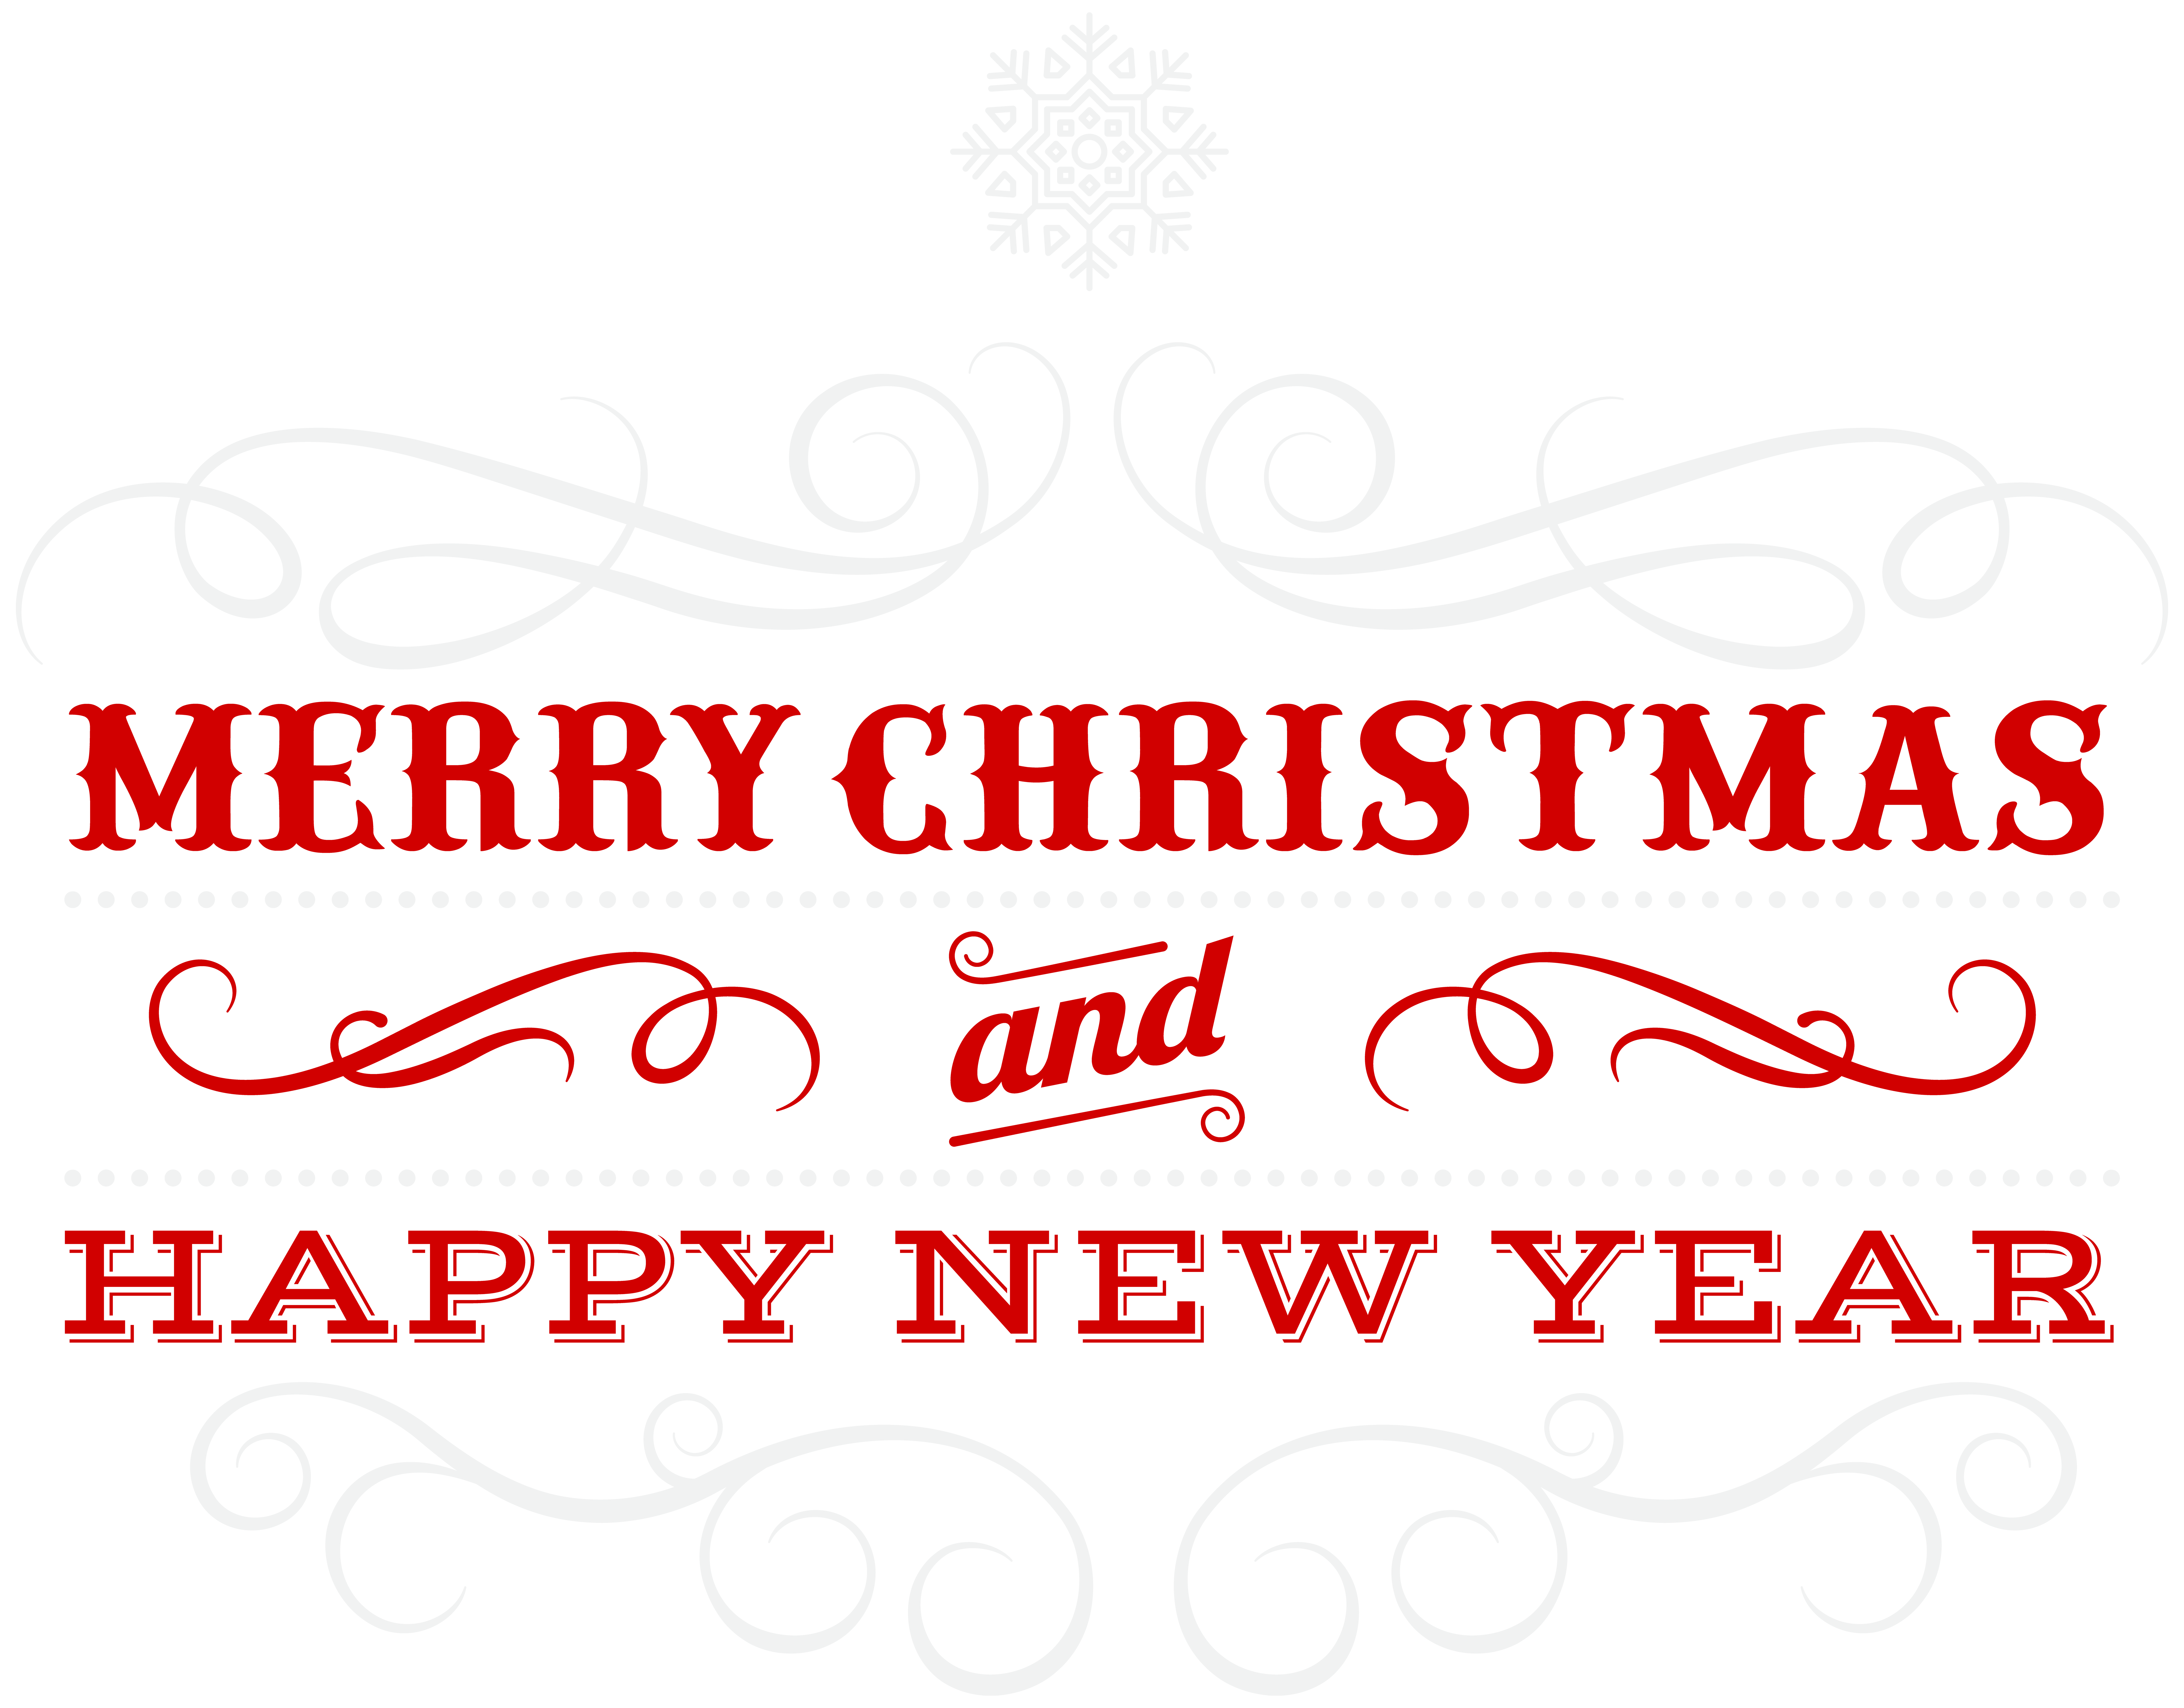 Merry christmas and happy new year in chinese clipart images gallery.